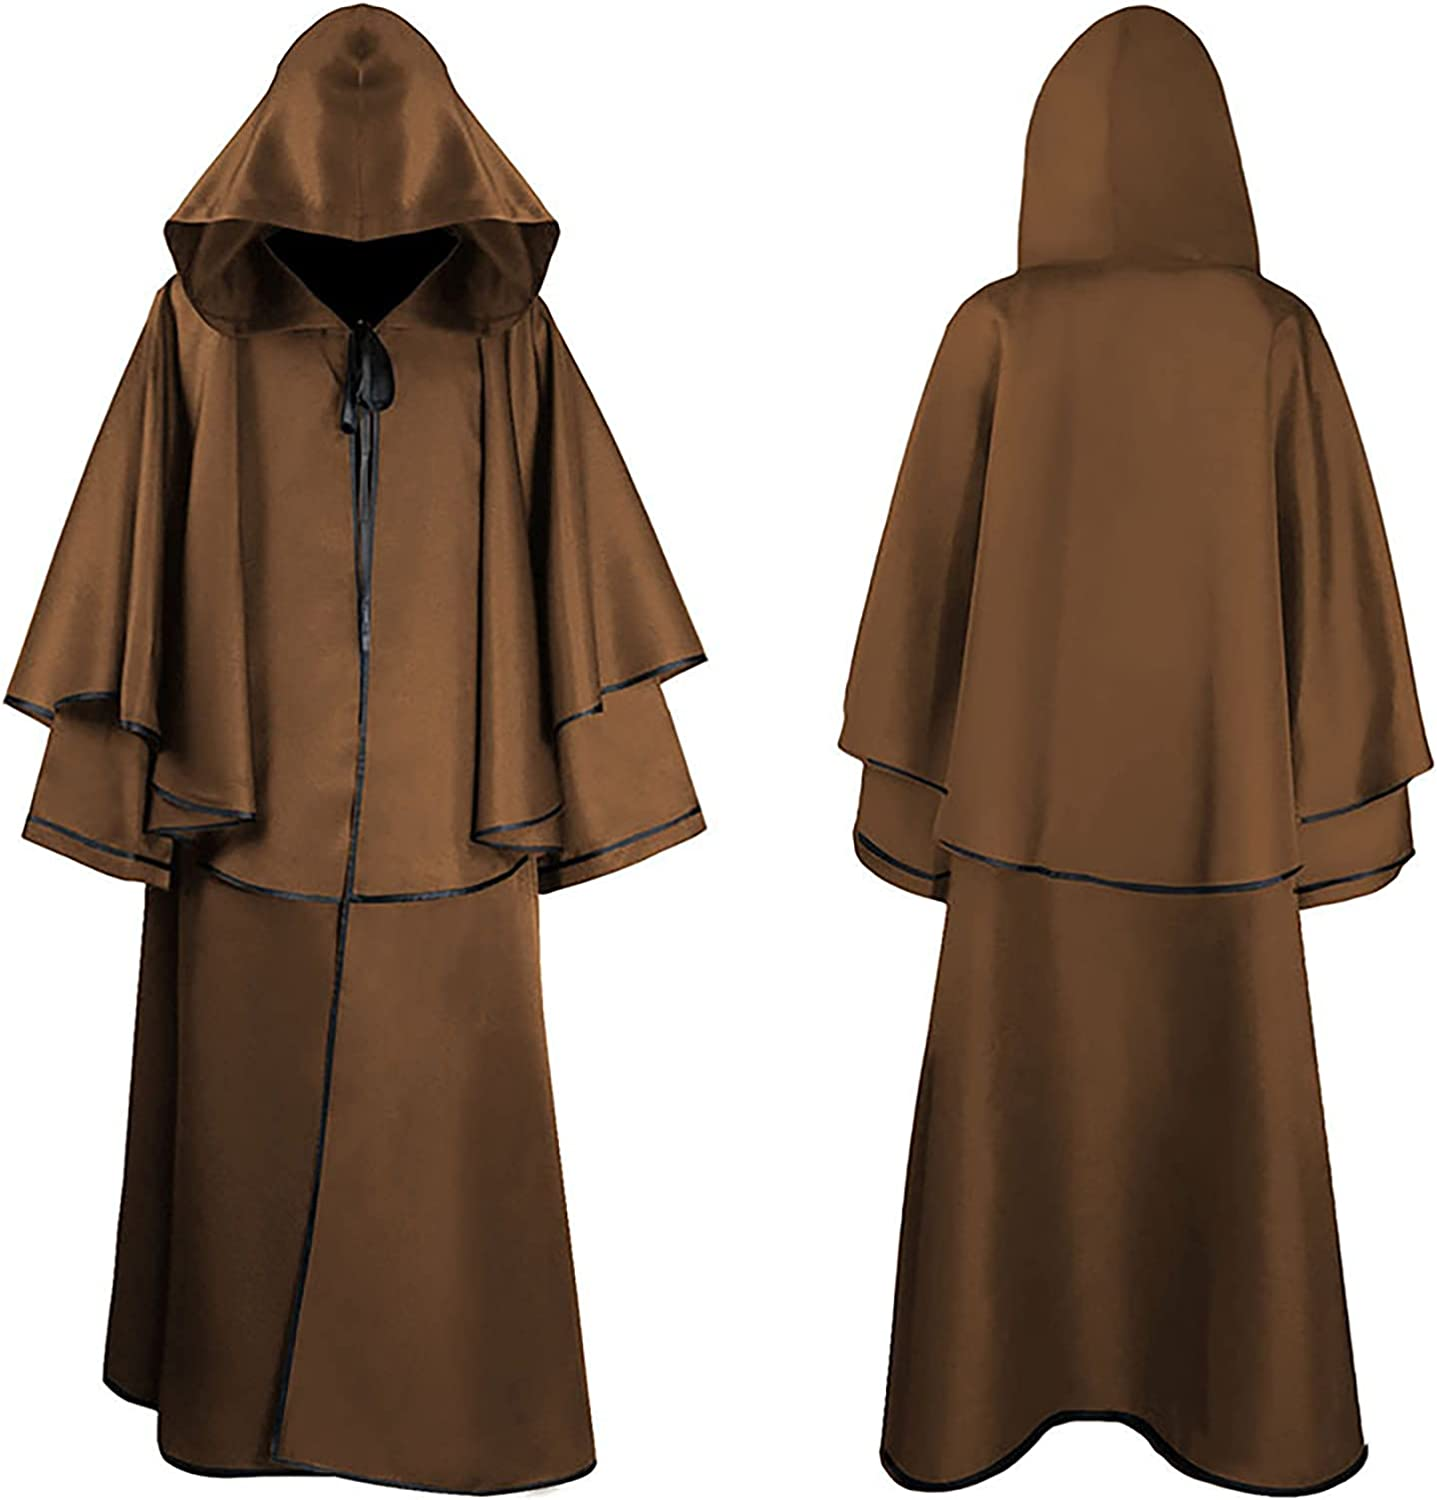 Adult Reservation Halloween Mesa Mall Costumes Cloak Hooded Tunic Wizard